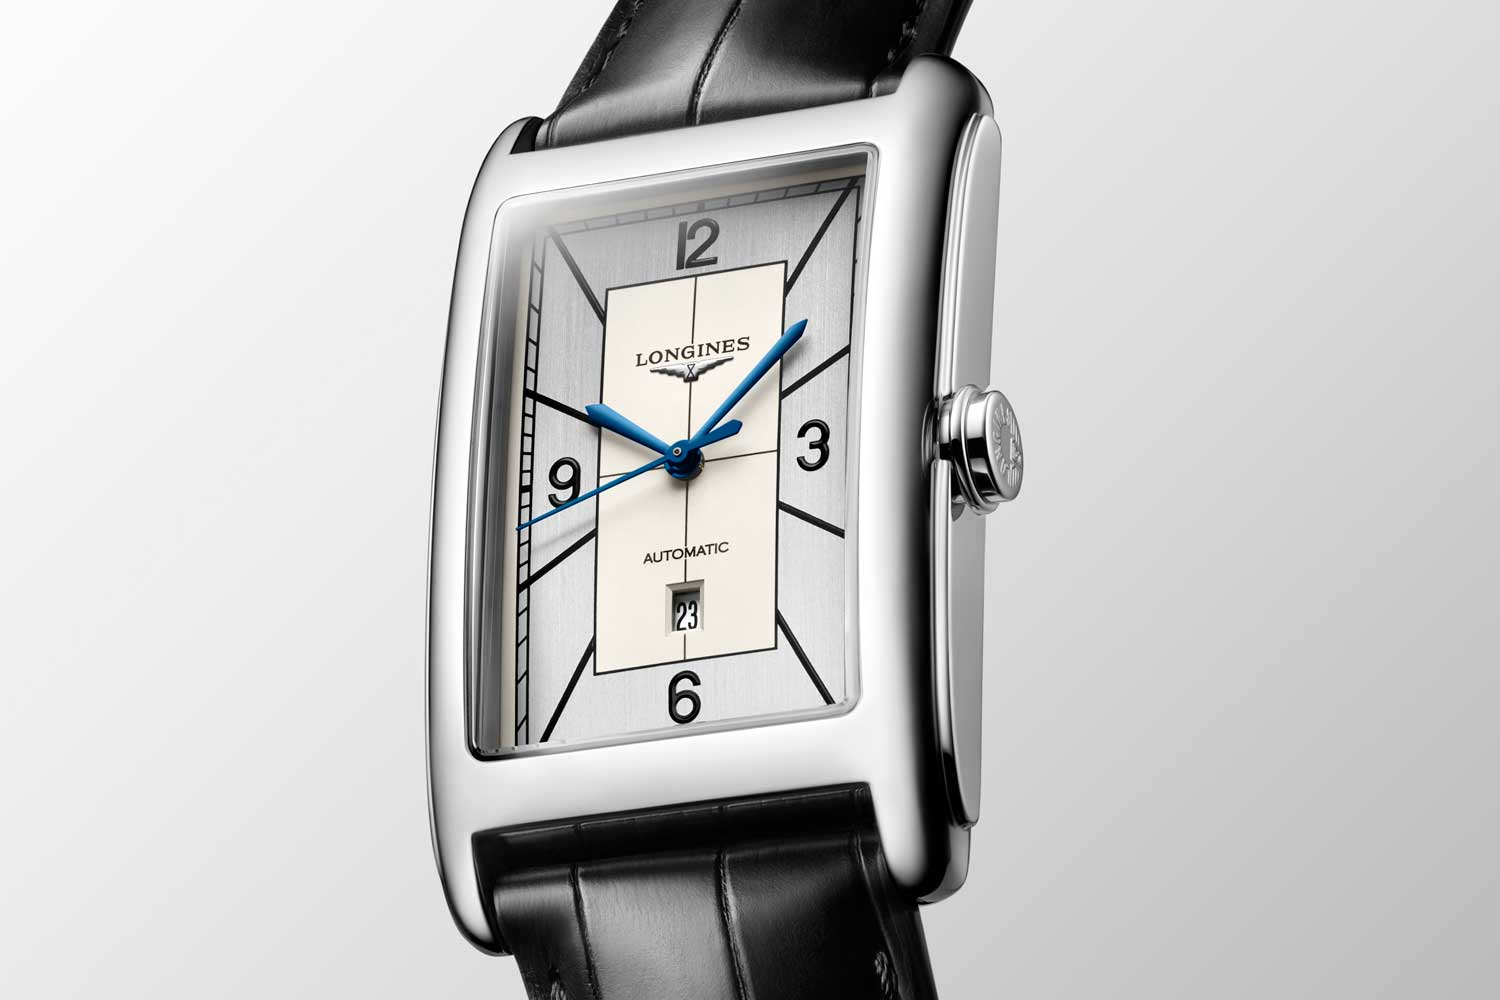 The sectorised dials of the new models highlight the collection's Art Deco ideology